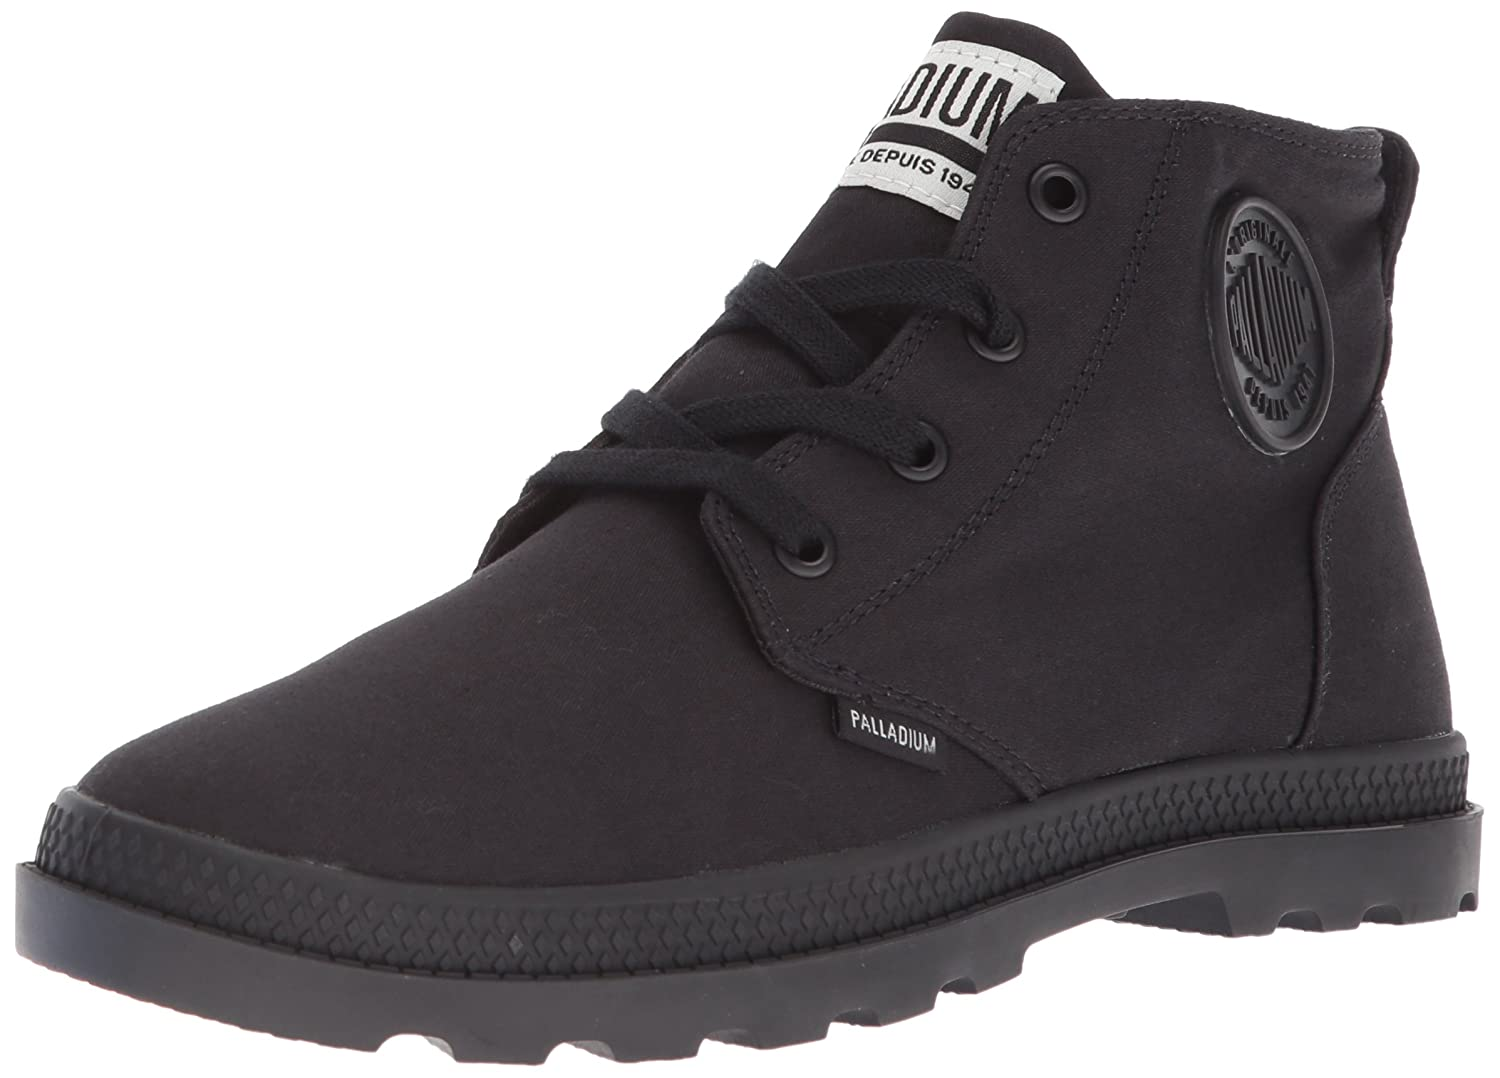 Palladium Women's Pampa Free CVS Ankle Boot B074B3ZQC5 6.5 B(M) US|Black